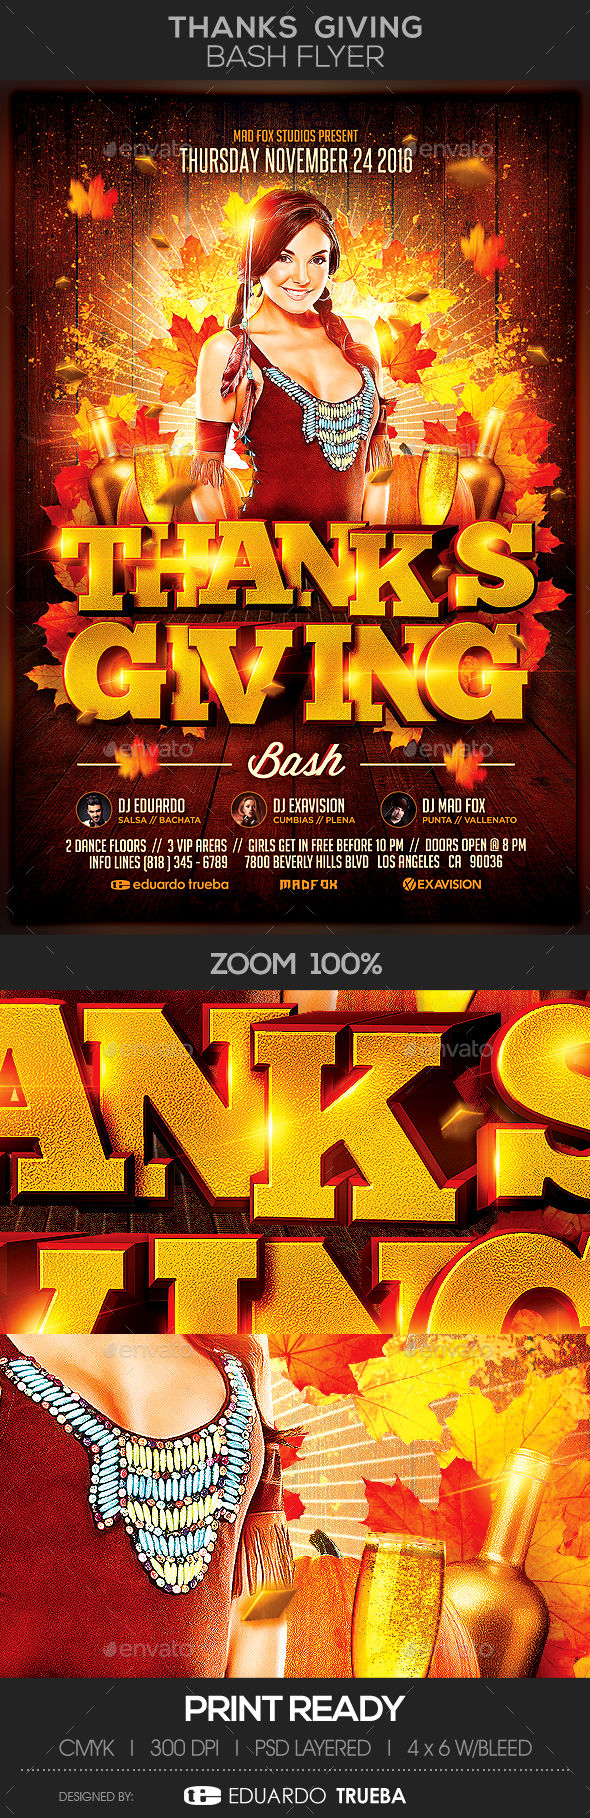 Thanks Giving Bash Flyer - Flyers Print Templates